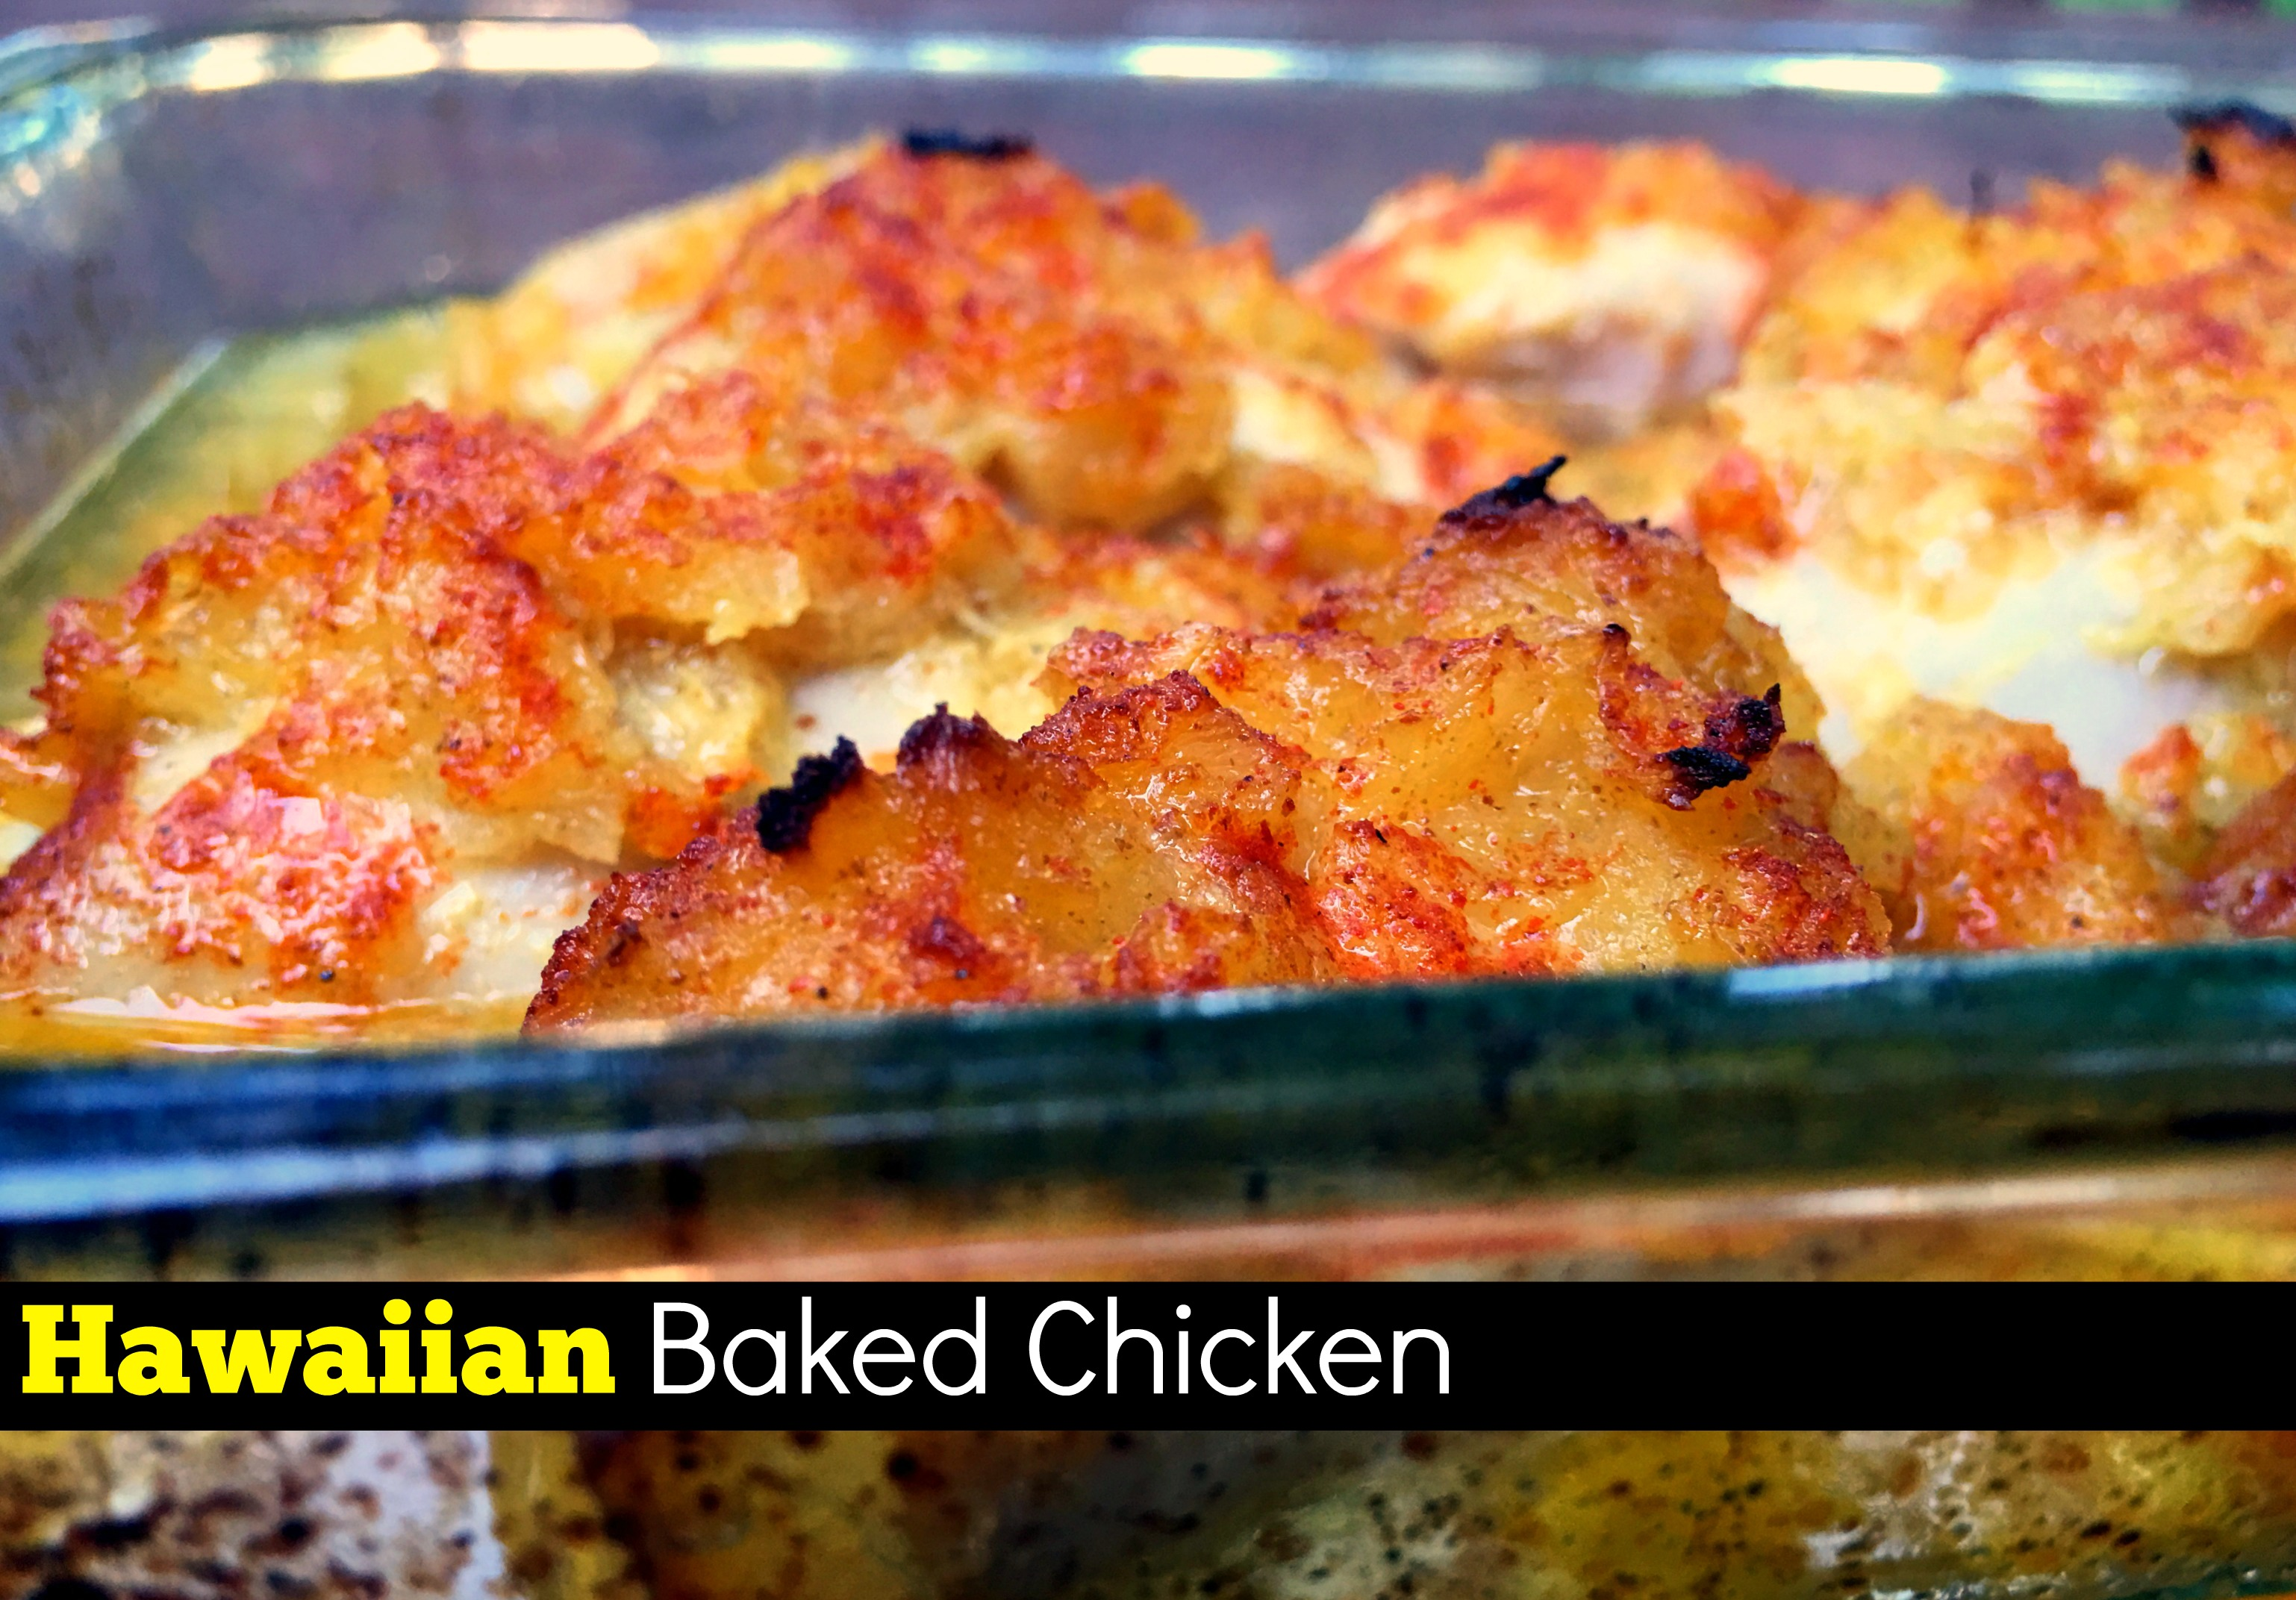 Hawaiian Baked Chicken